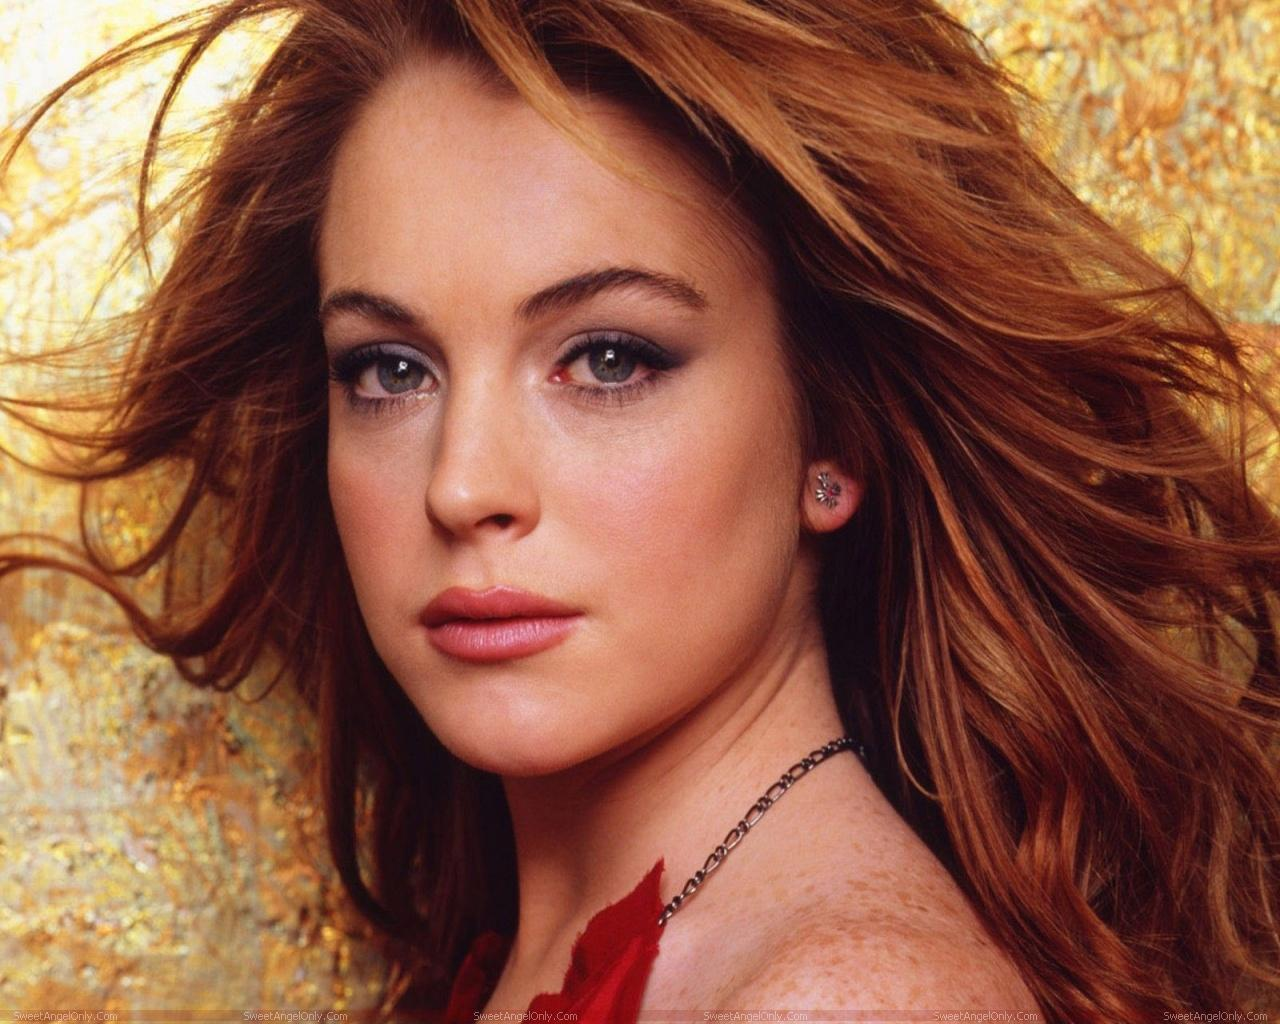 http://3.bp.blogspot.com/-LOtzSFA9Dlc/TYbuUJYS6WI/AAAAAAAAFsk/9cN1ugJ0G2w/s1600/lindsay_lohan_hollywood_hot_actress_wallpaper_sweetangelonly_05.jpg